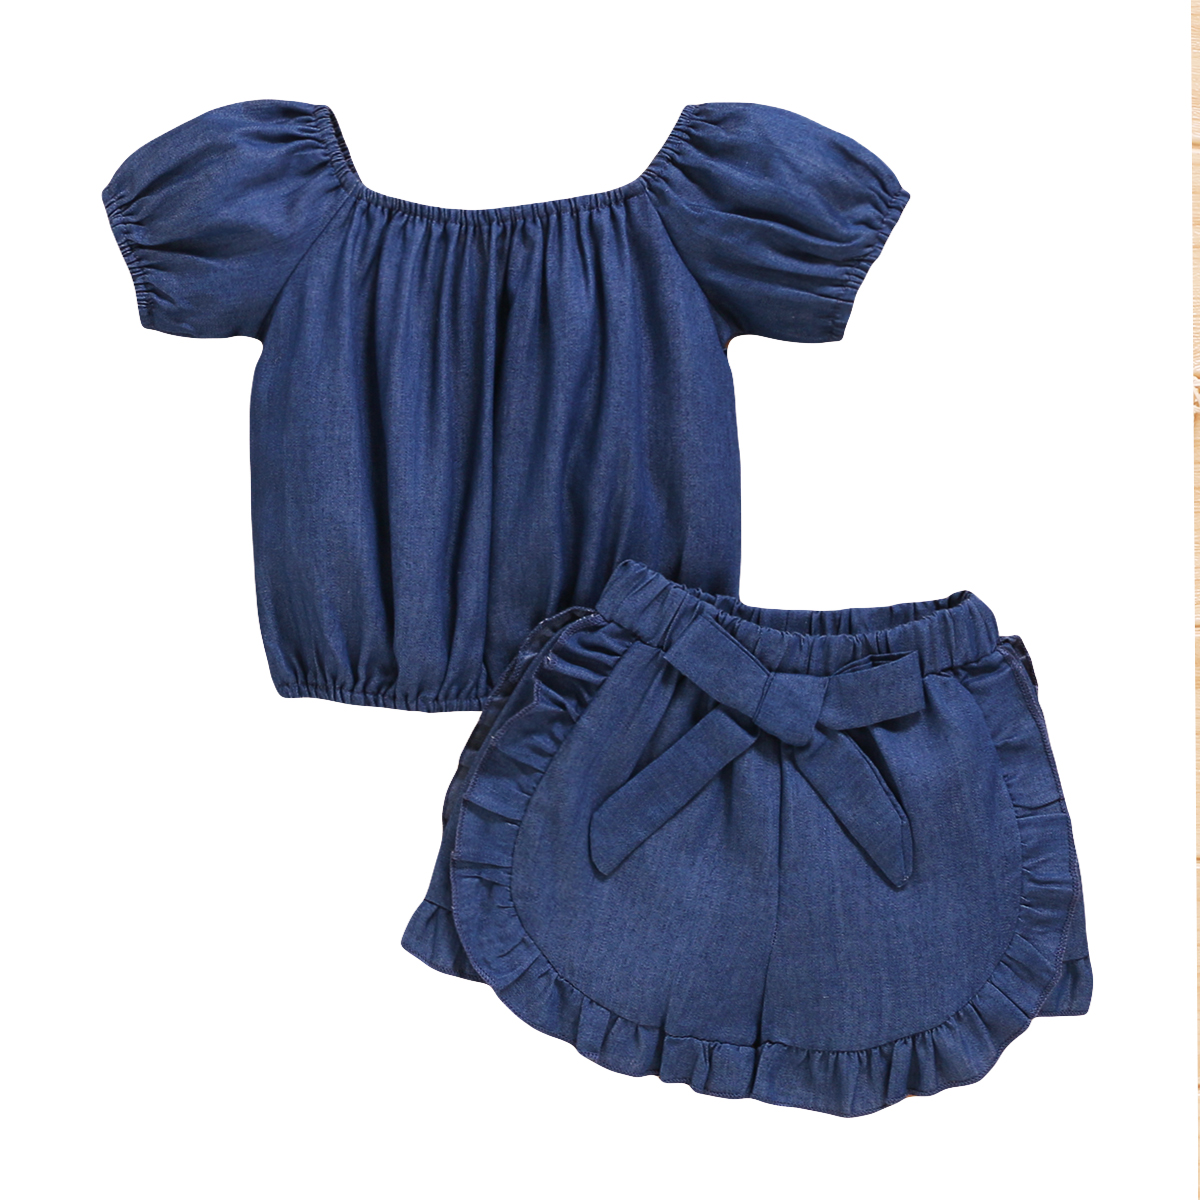 2020 Baby Summer Clothes Sets Toddler Kids Baby Girls Solid Tops Shirts+Shorts Pants Outfits Clothes Blue Pudcoco